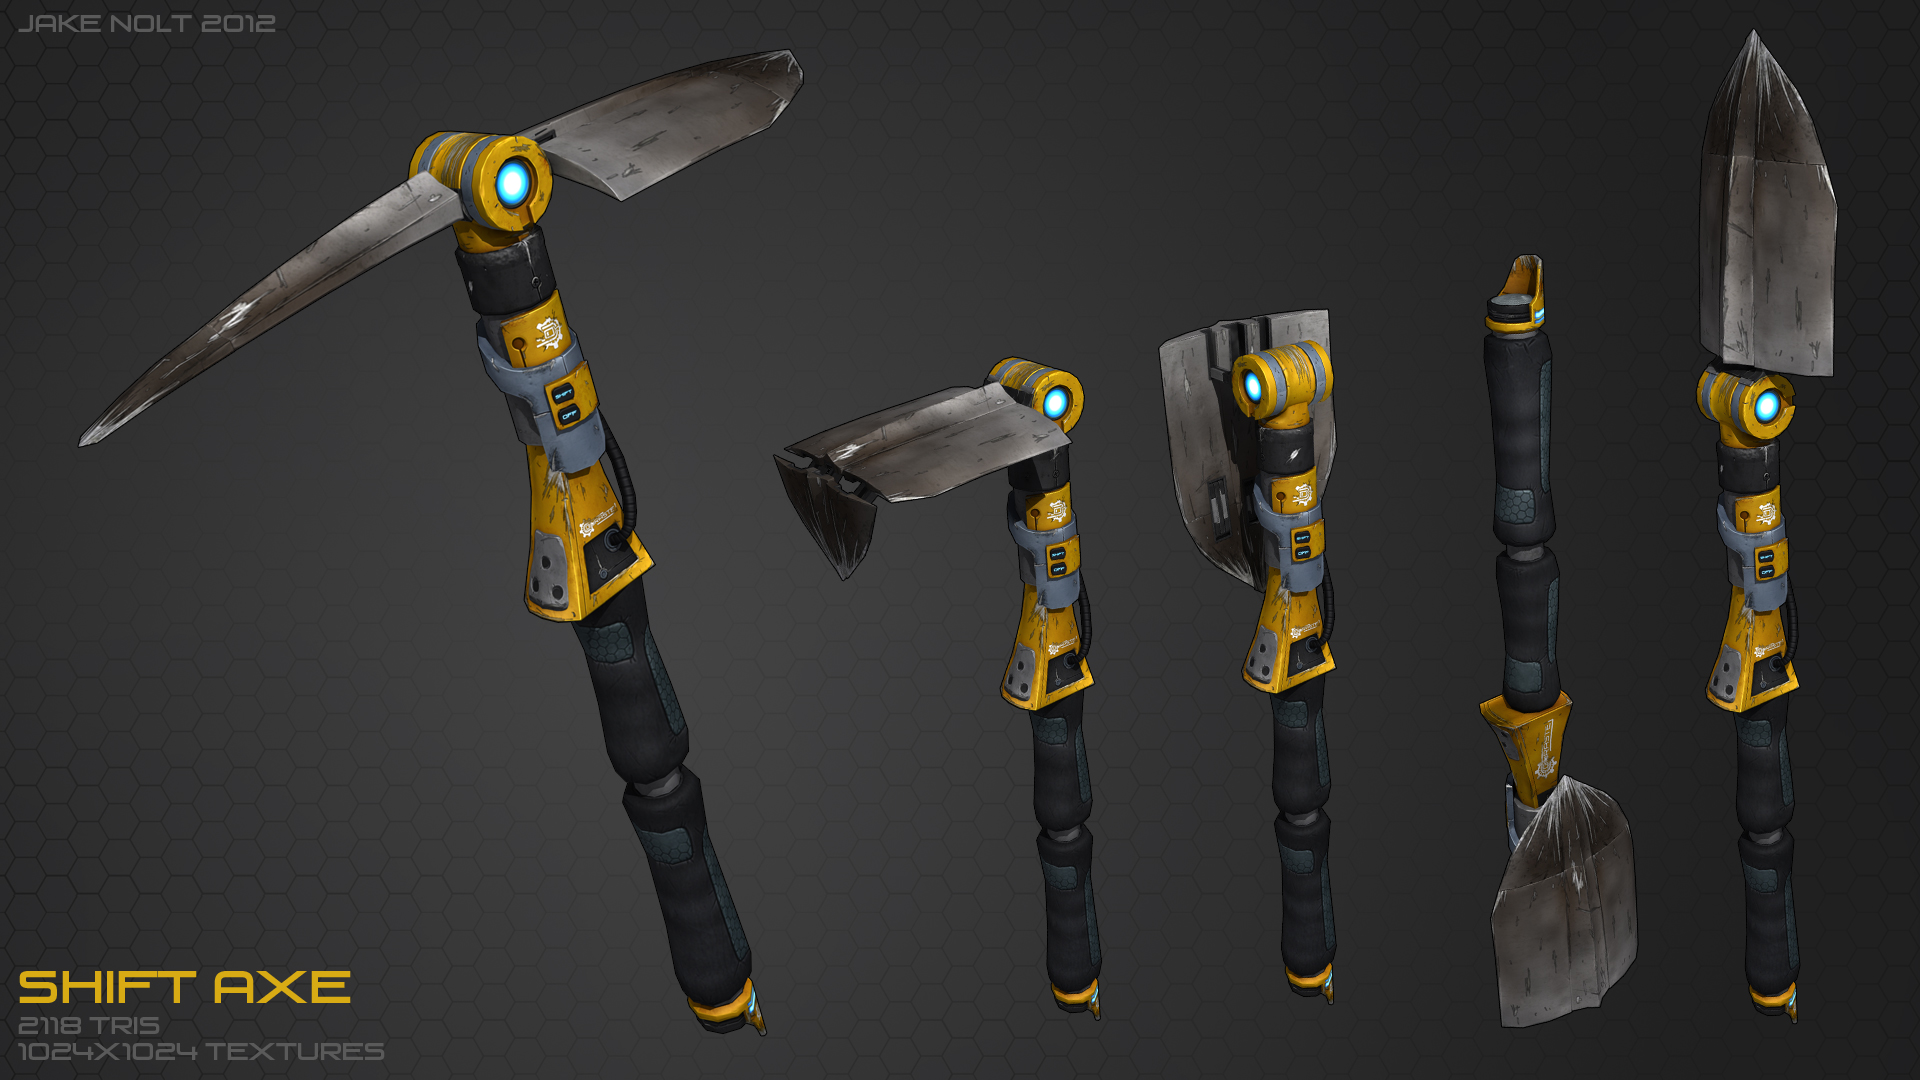 shift_axe_by_9thknight-d5byrm3.jpg